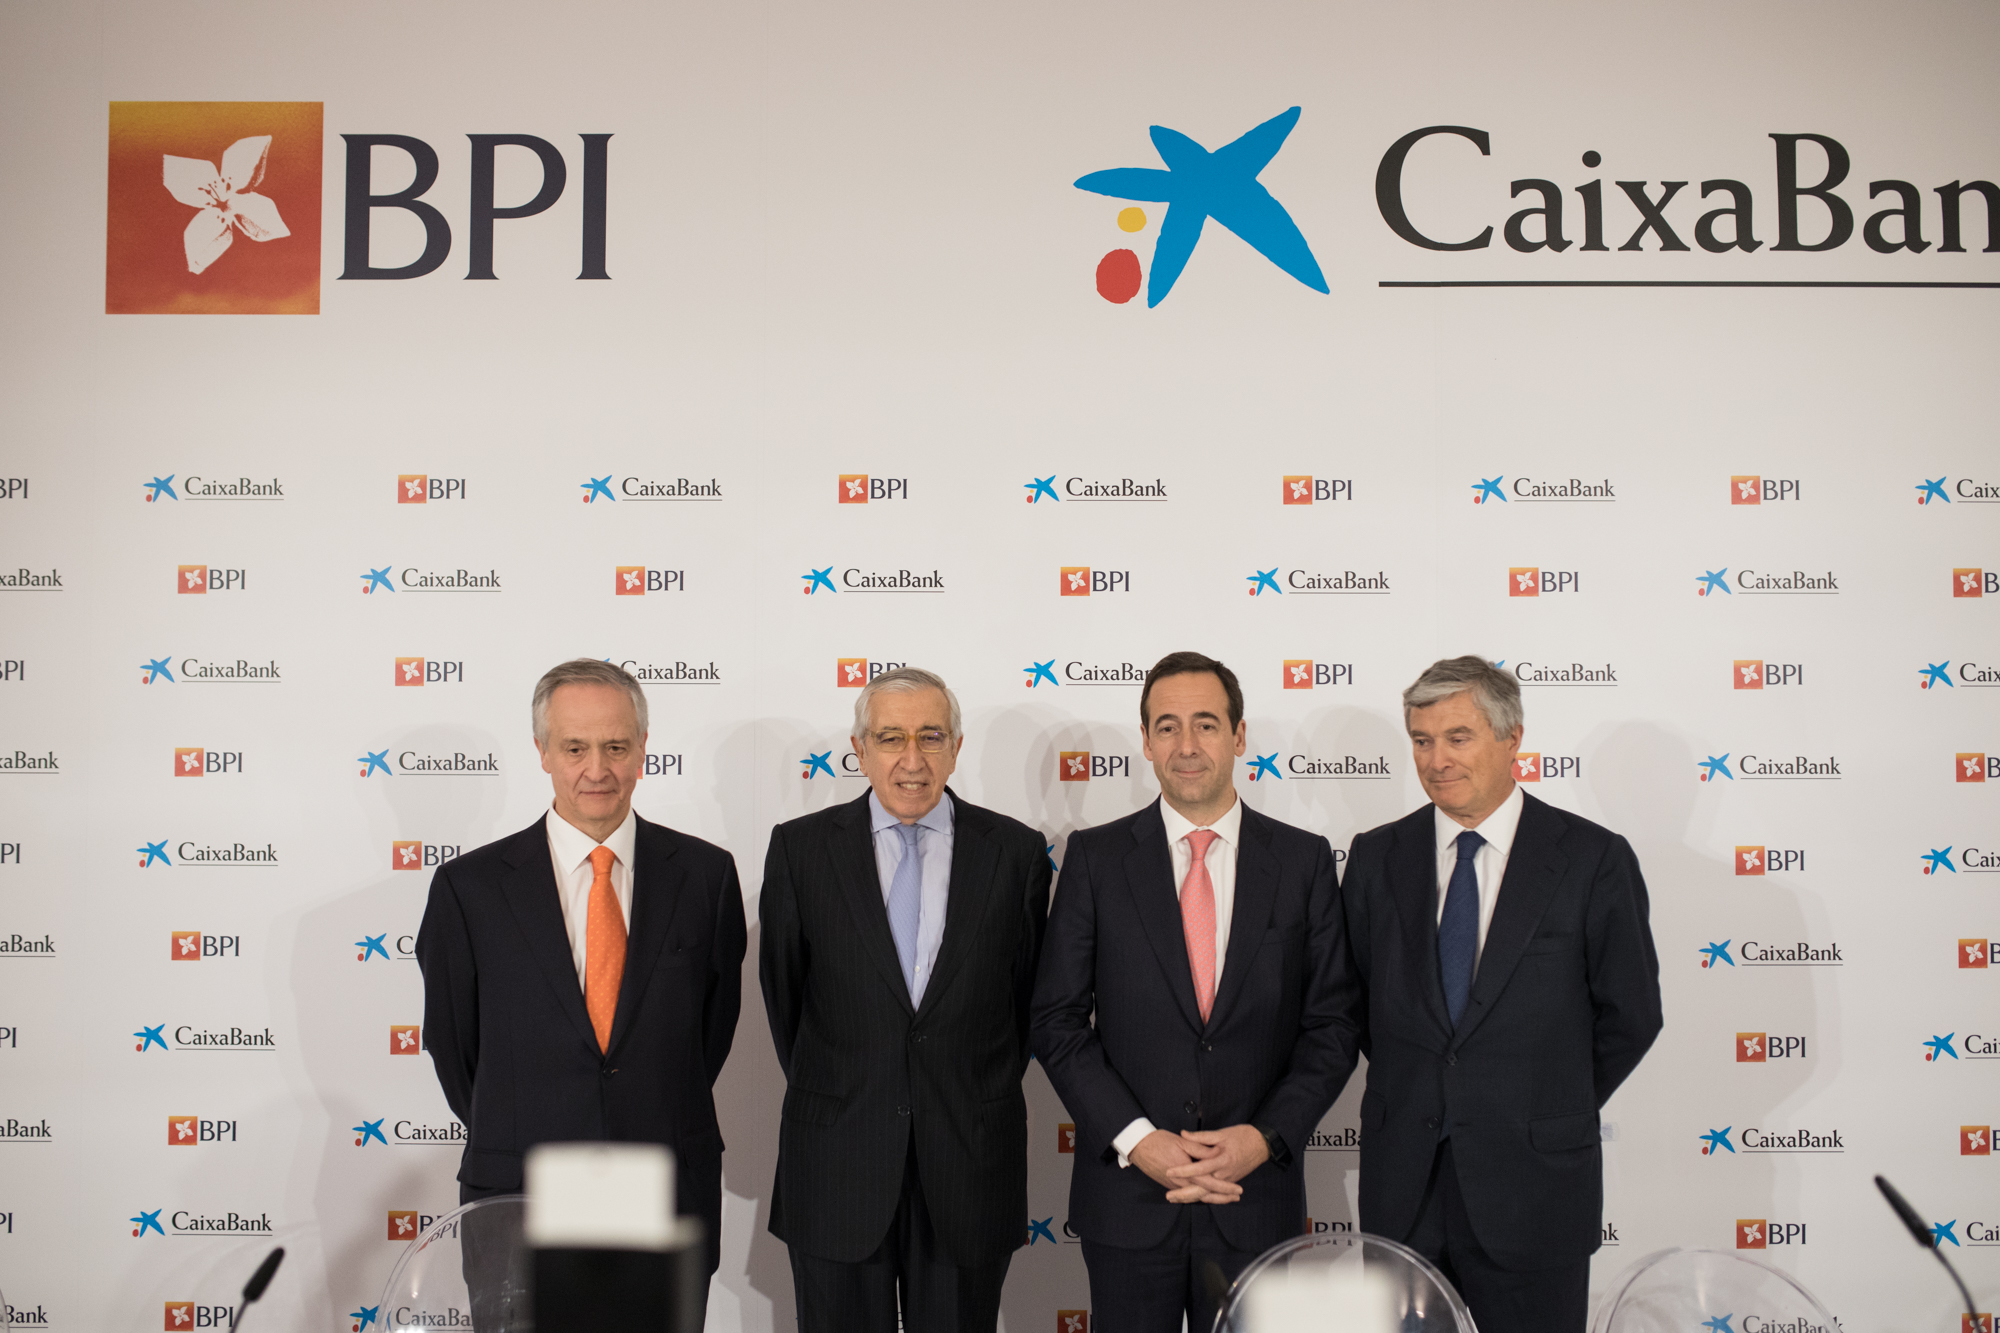 CaixaBank leads the Iberian market after securing 84.51% of BPI capital